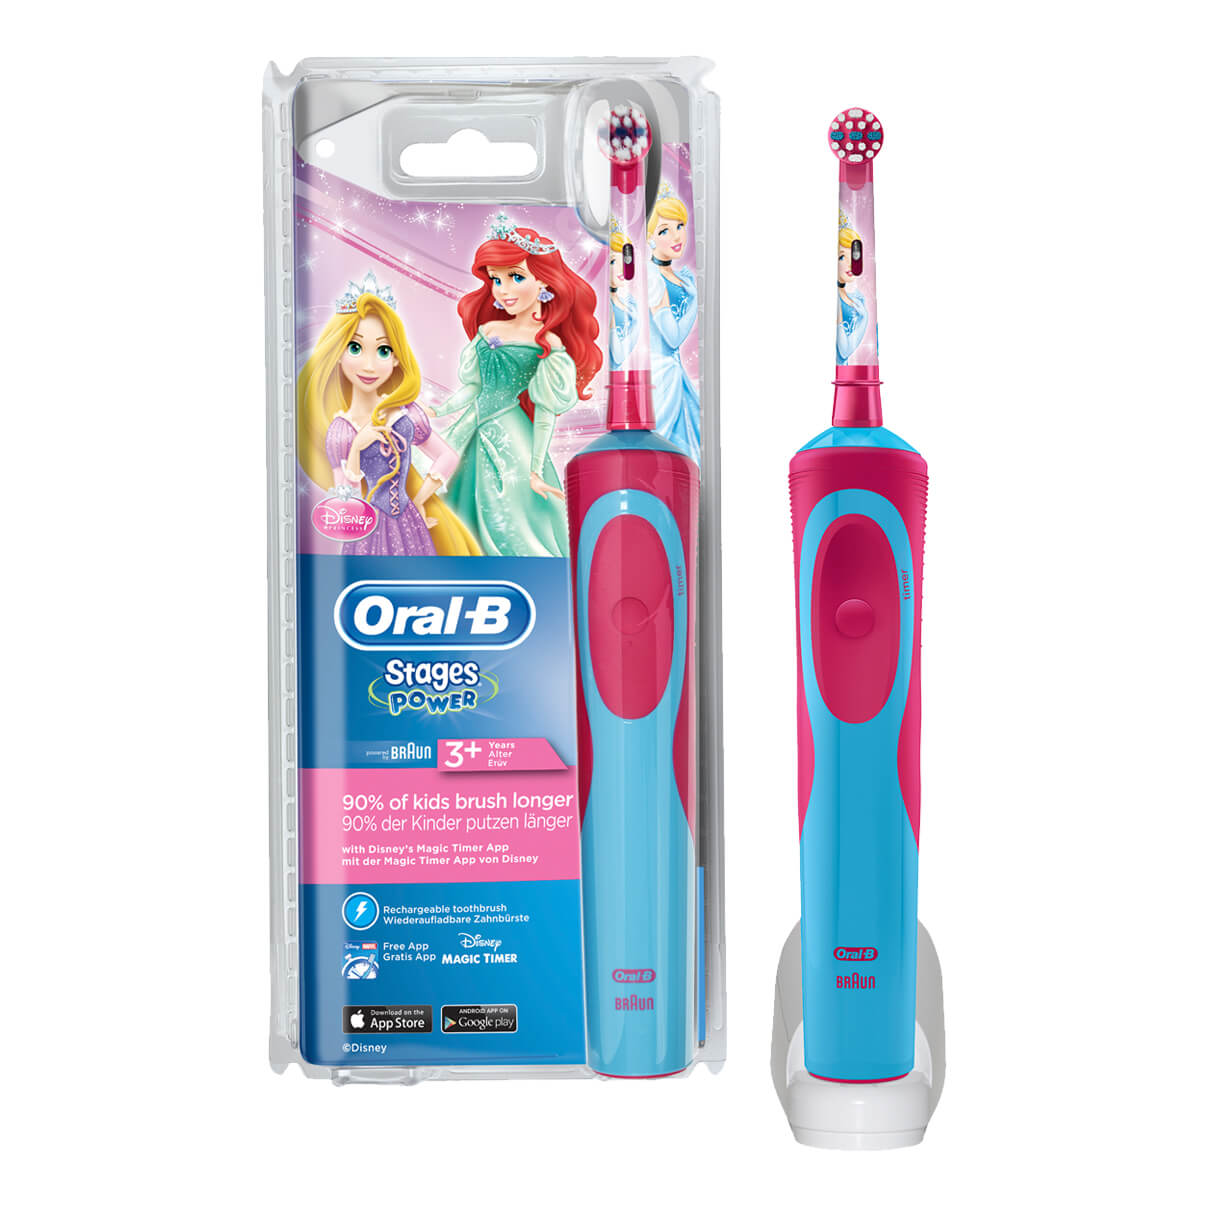 Oral-B Stages Power Kids Rechargeable Electric Toothbrush featuring Disney Princesses